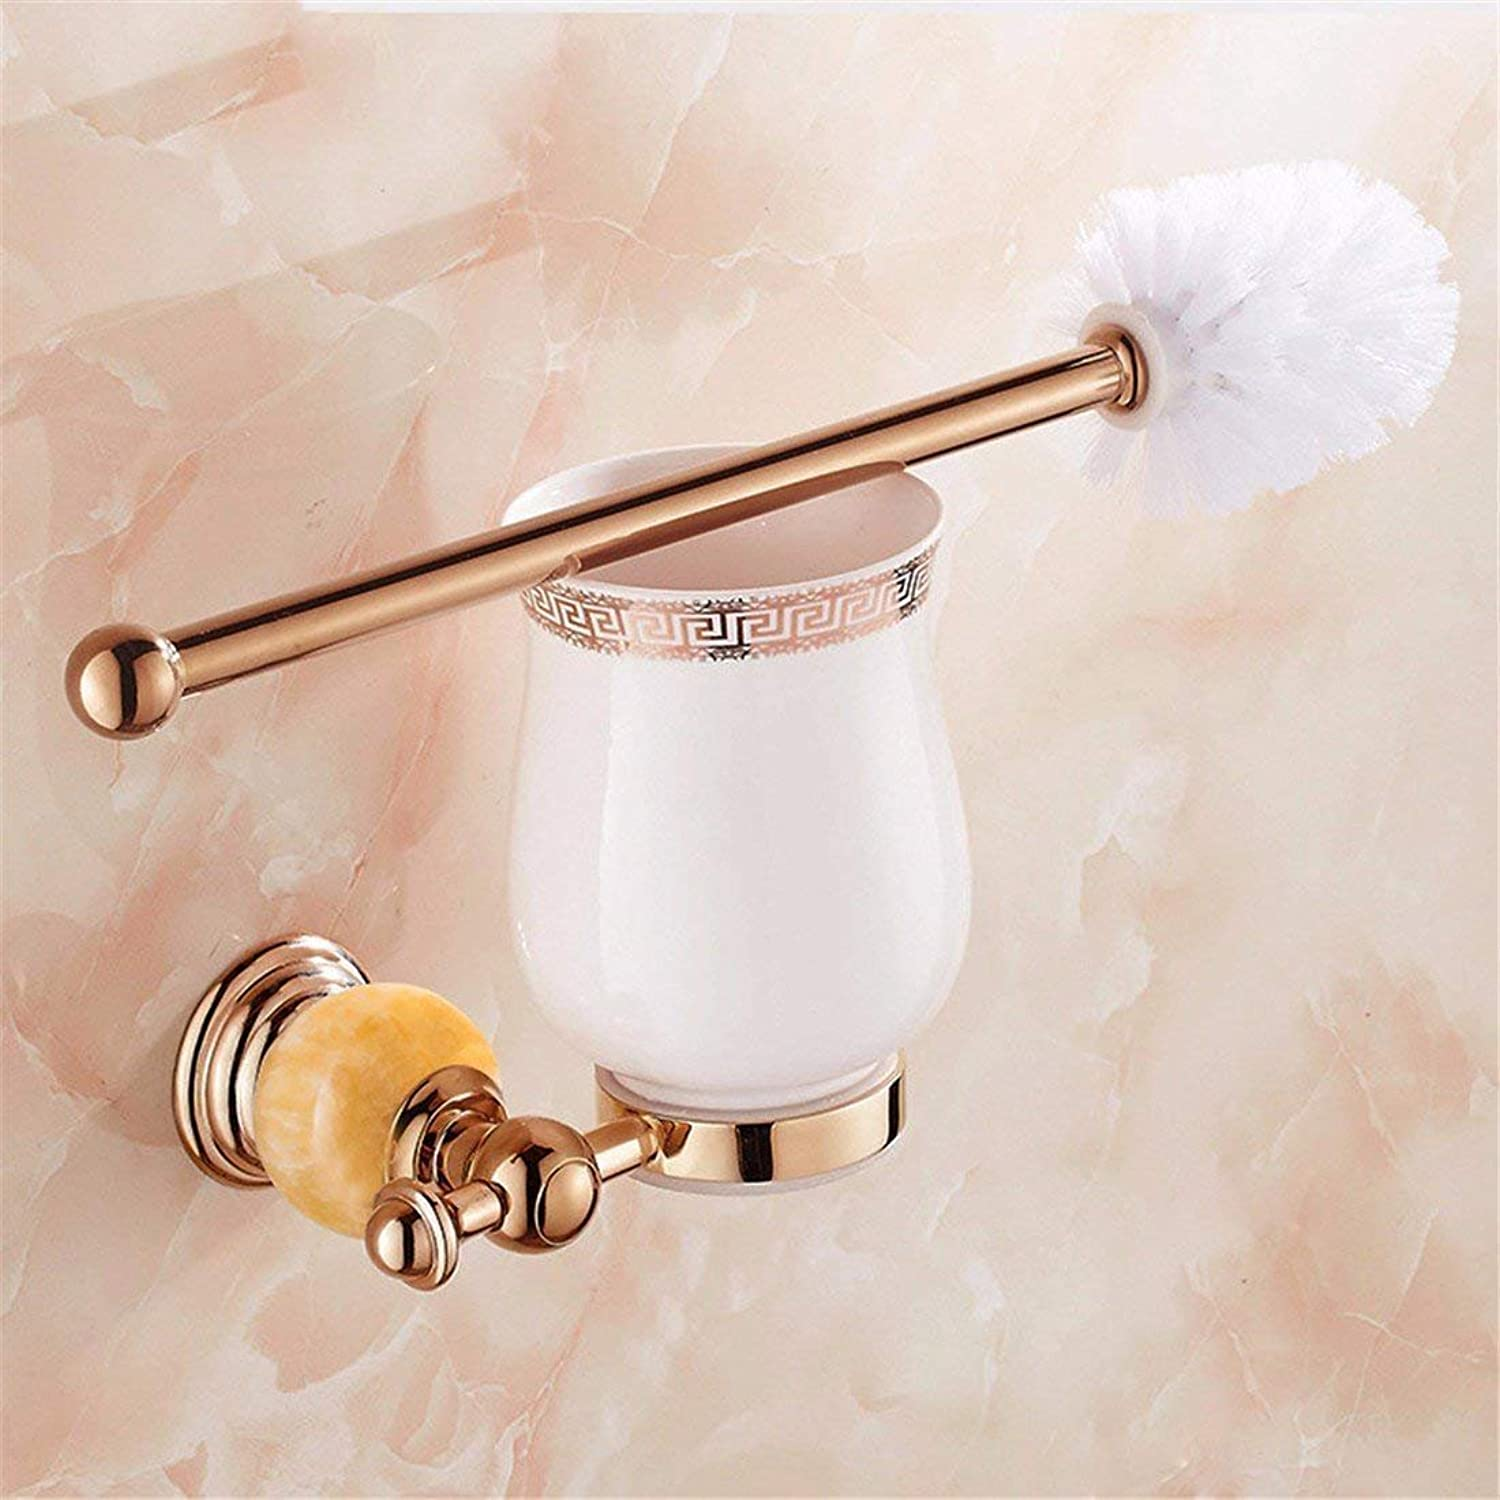 The Antiquity The Pink gold Pendentif Jade WC Brush Bathroom,Boxes to soap